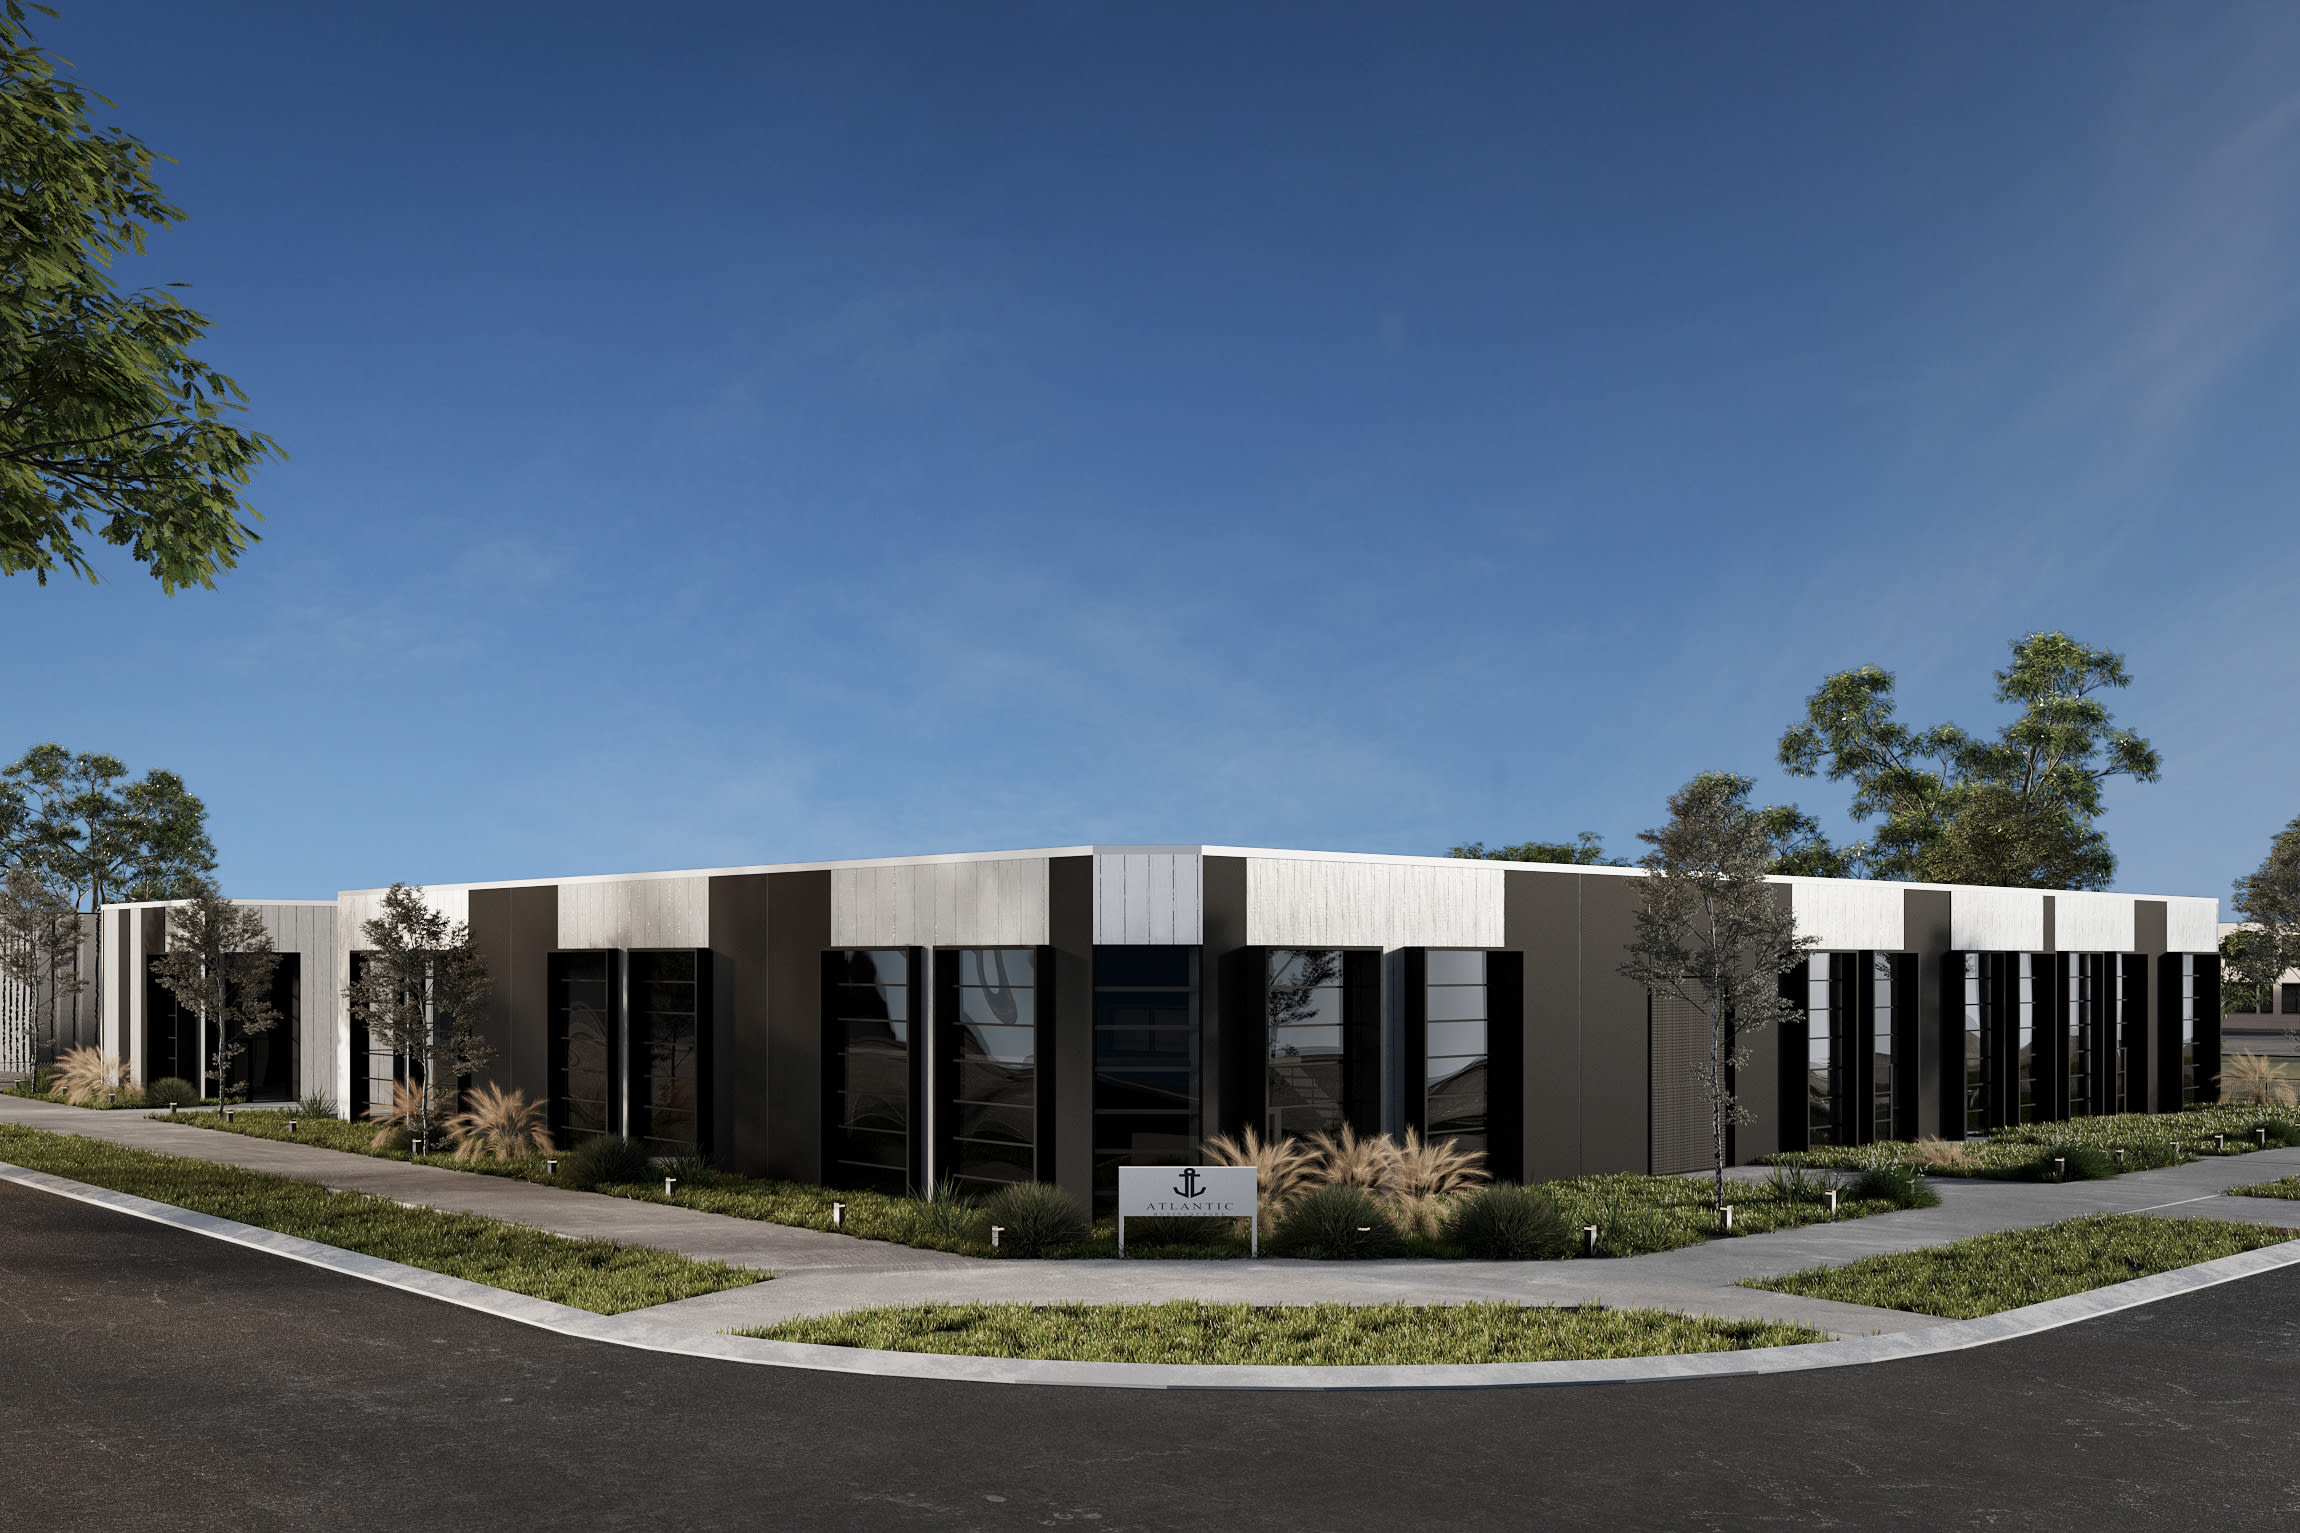 The Atlantic Business Park - Wide View Photorealistic 3d Render Full Size